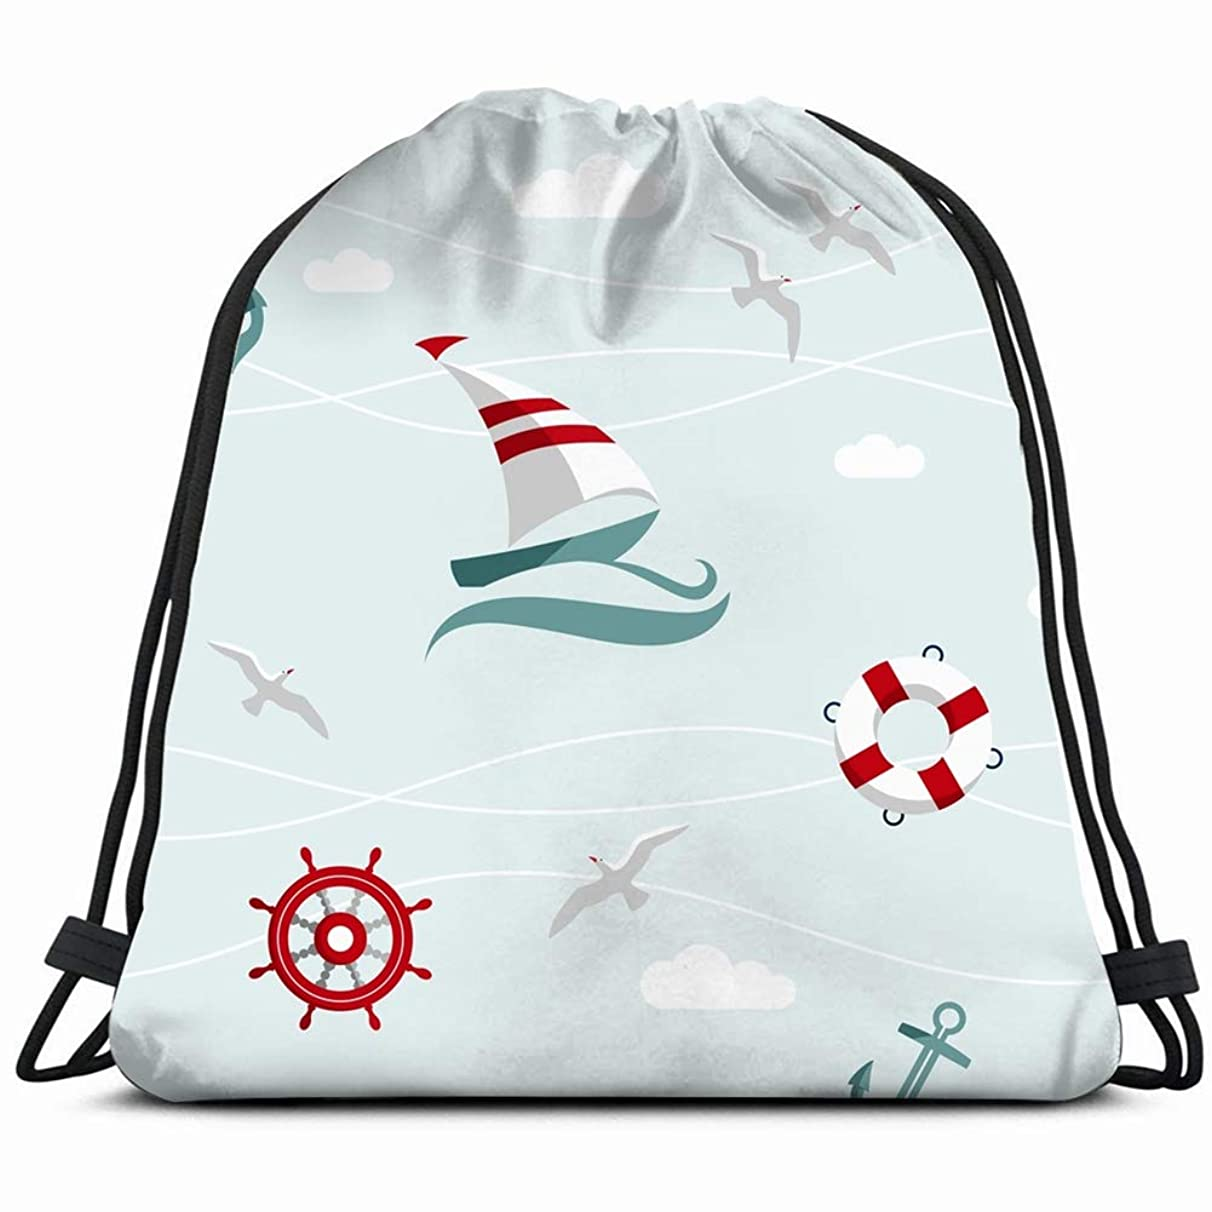 sea nautical elements flat ocean sports recreation Drawstring Backpack Gym Sack Lightweight Bag Water Resistant Gym Backpack for Women&Men for Sports,Travelling,Hiking,Camping,Shopping Yoga